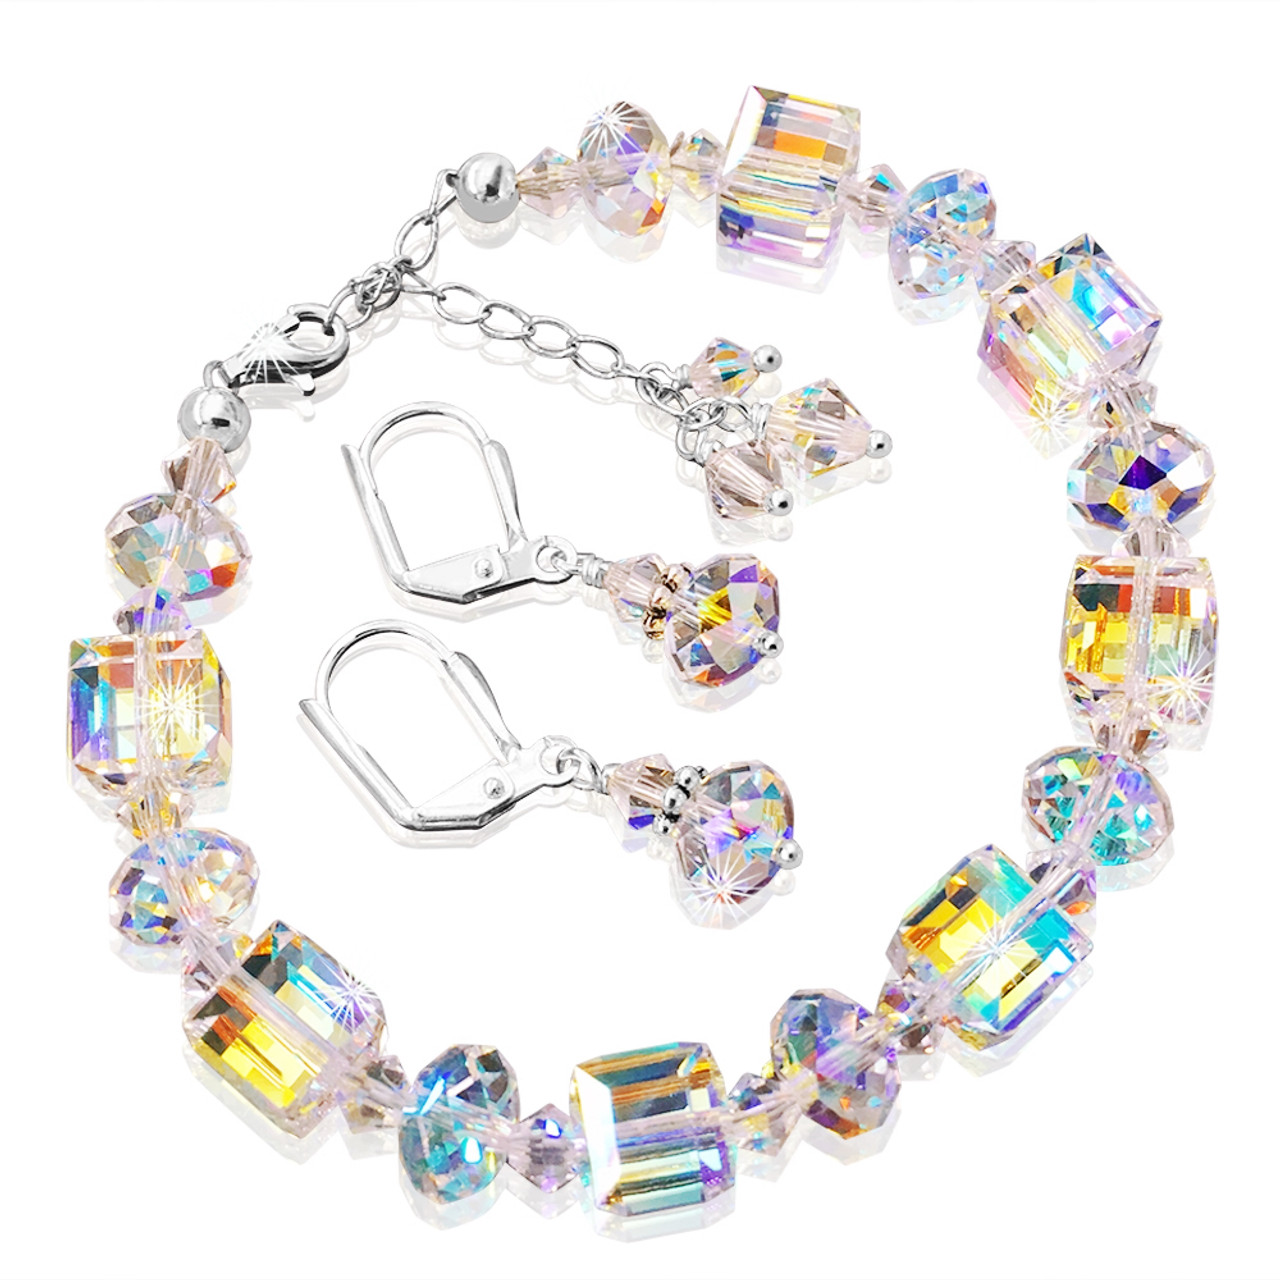 2c747596039 Crystal Bracelet and Earring Set with Crystals from Swarovski ...